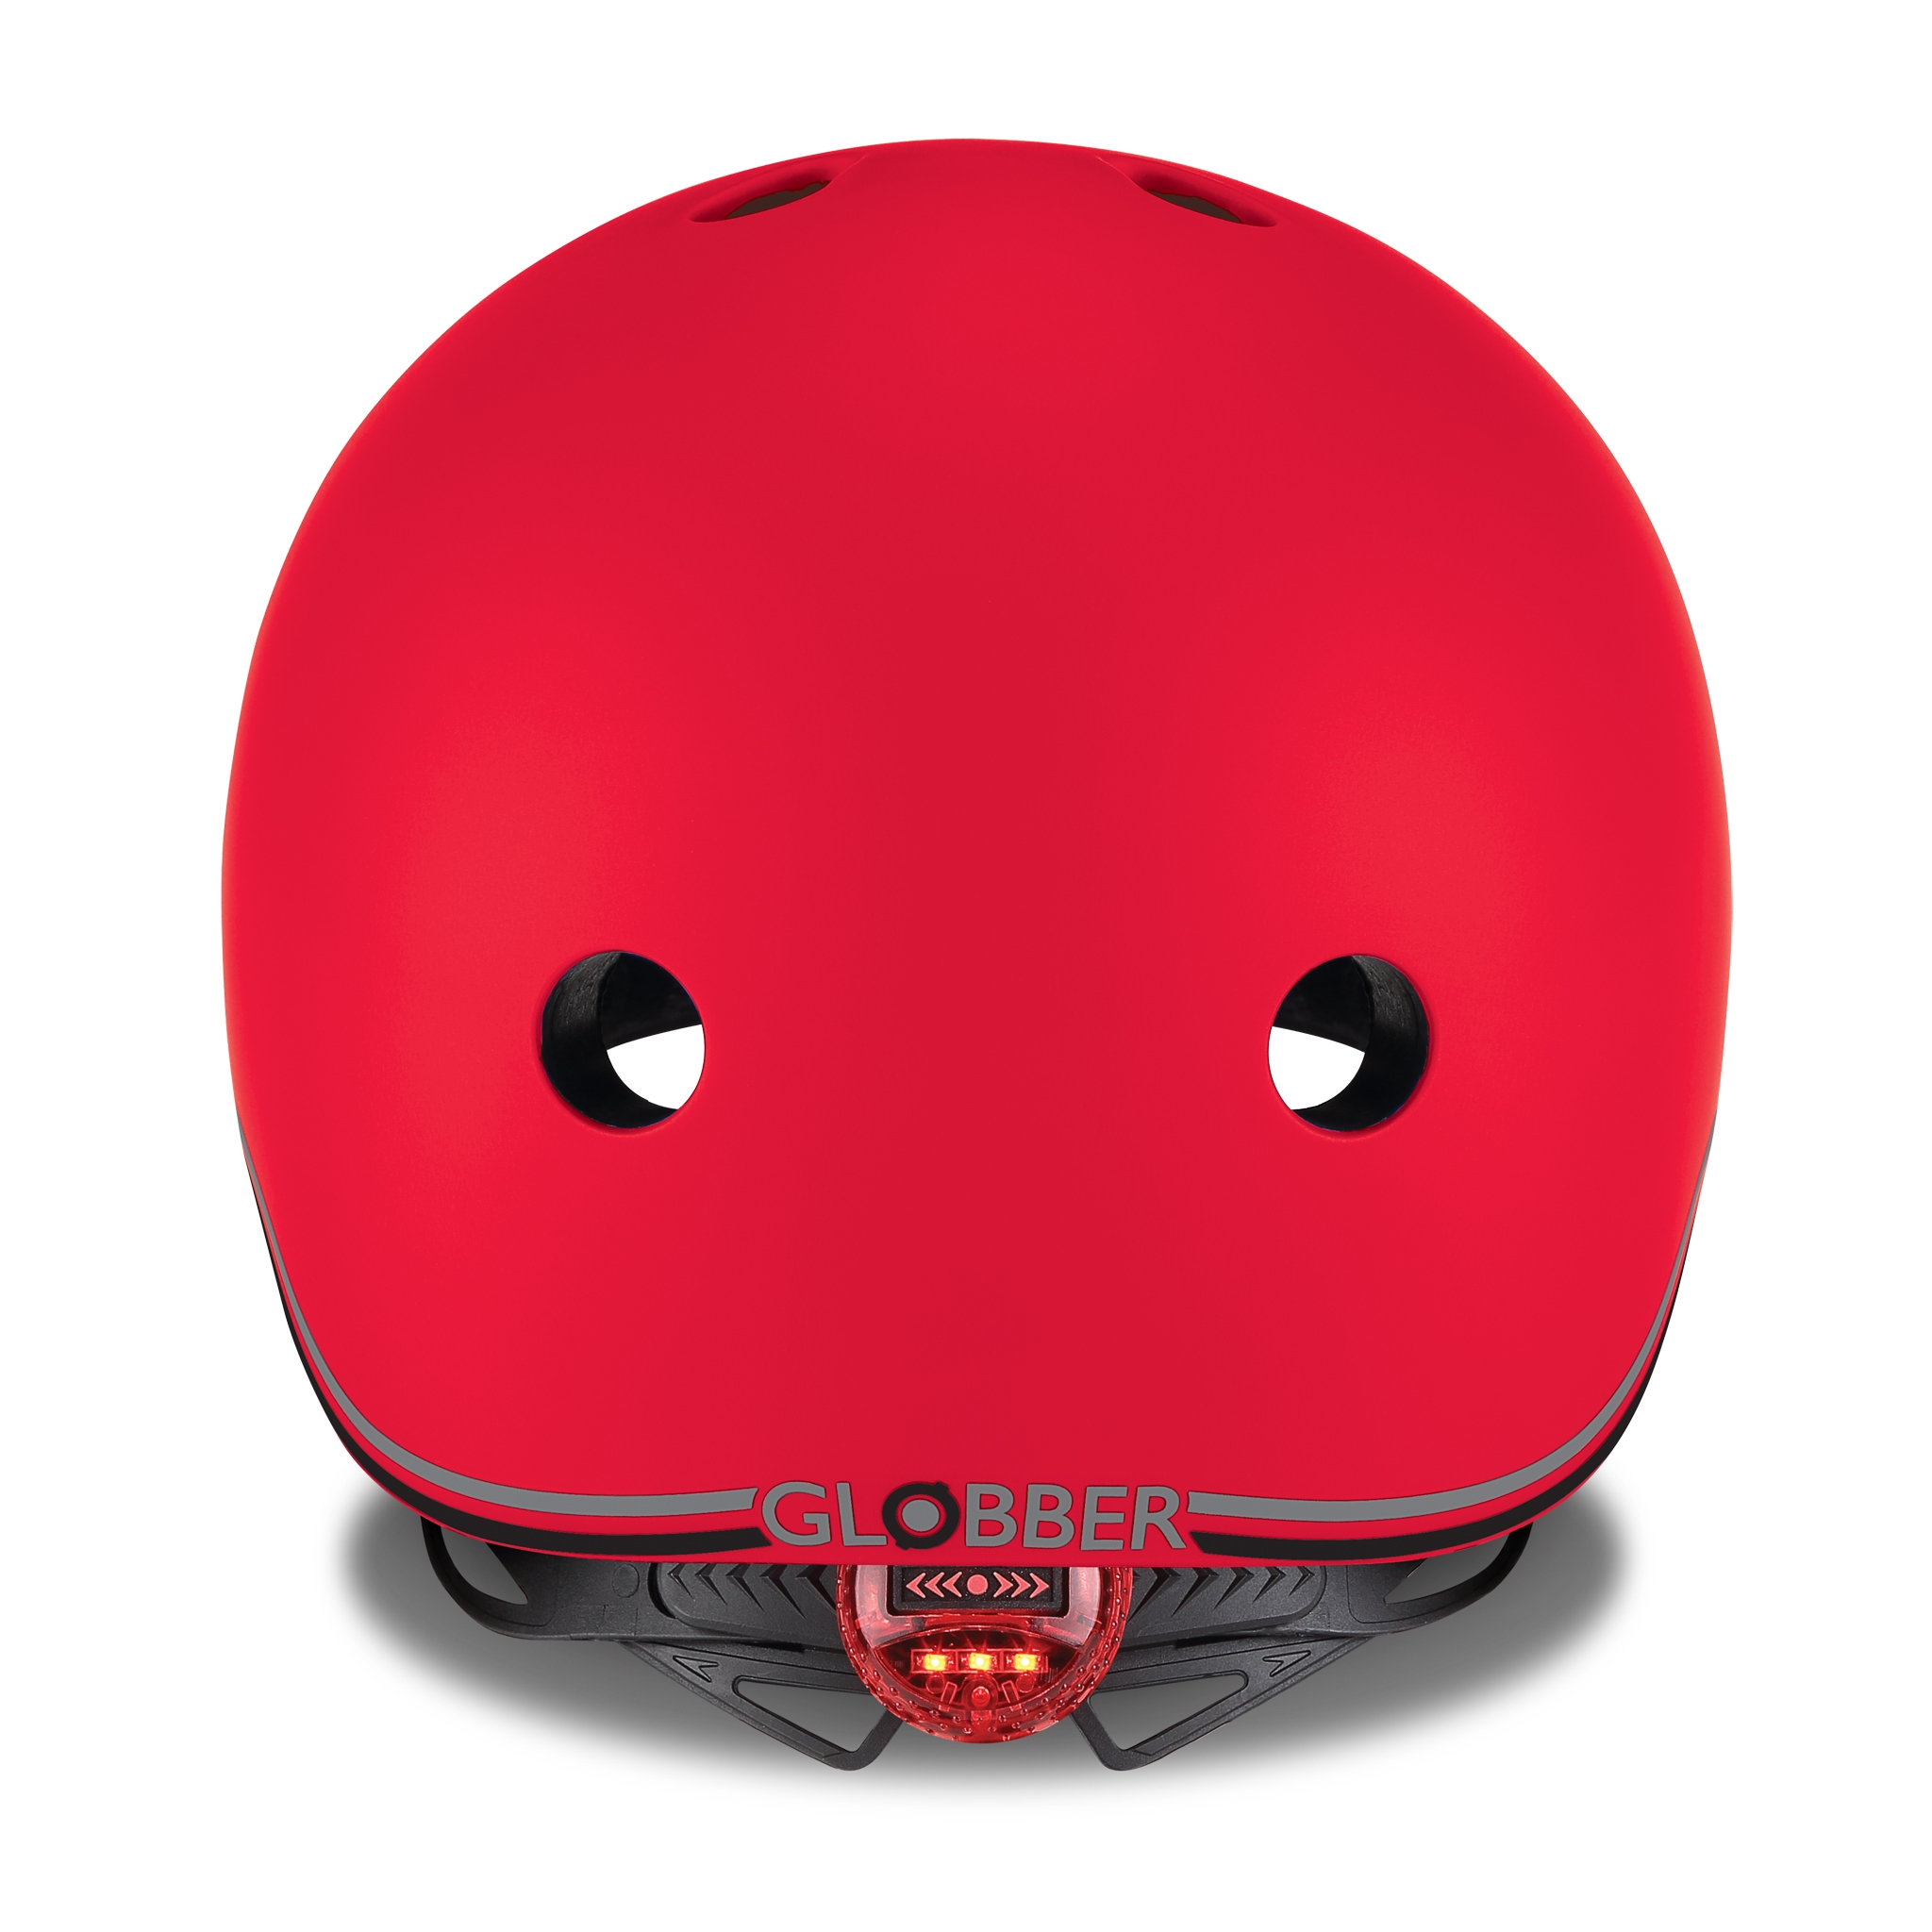 EVO-helmets-scooter-helmets-for-toddlers-with-LED-lights-safe-helmet-for-toddlers-new-red